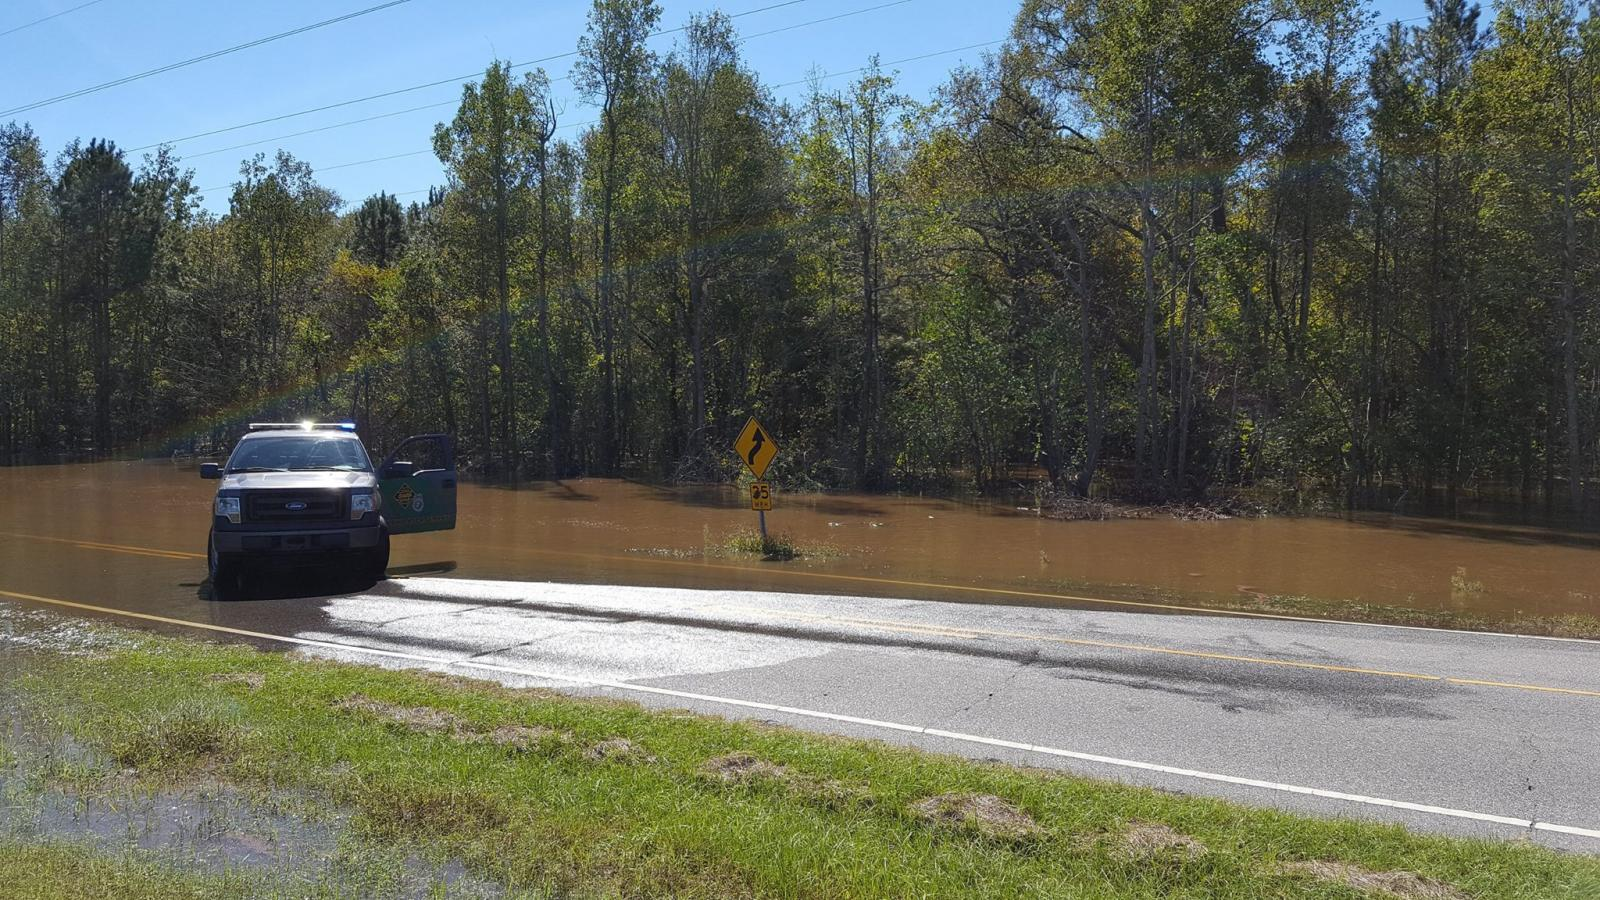 River Road east of the Cape Fear River in western Bladen County, NC was closed due to Hurricane Matthew's flooding